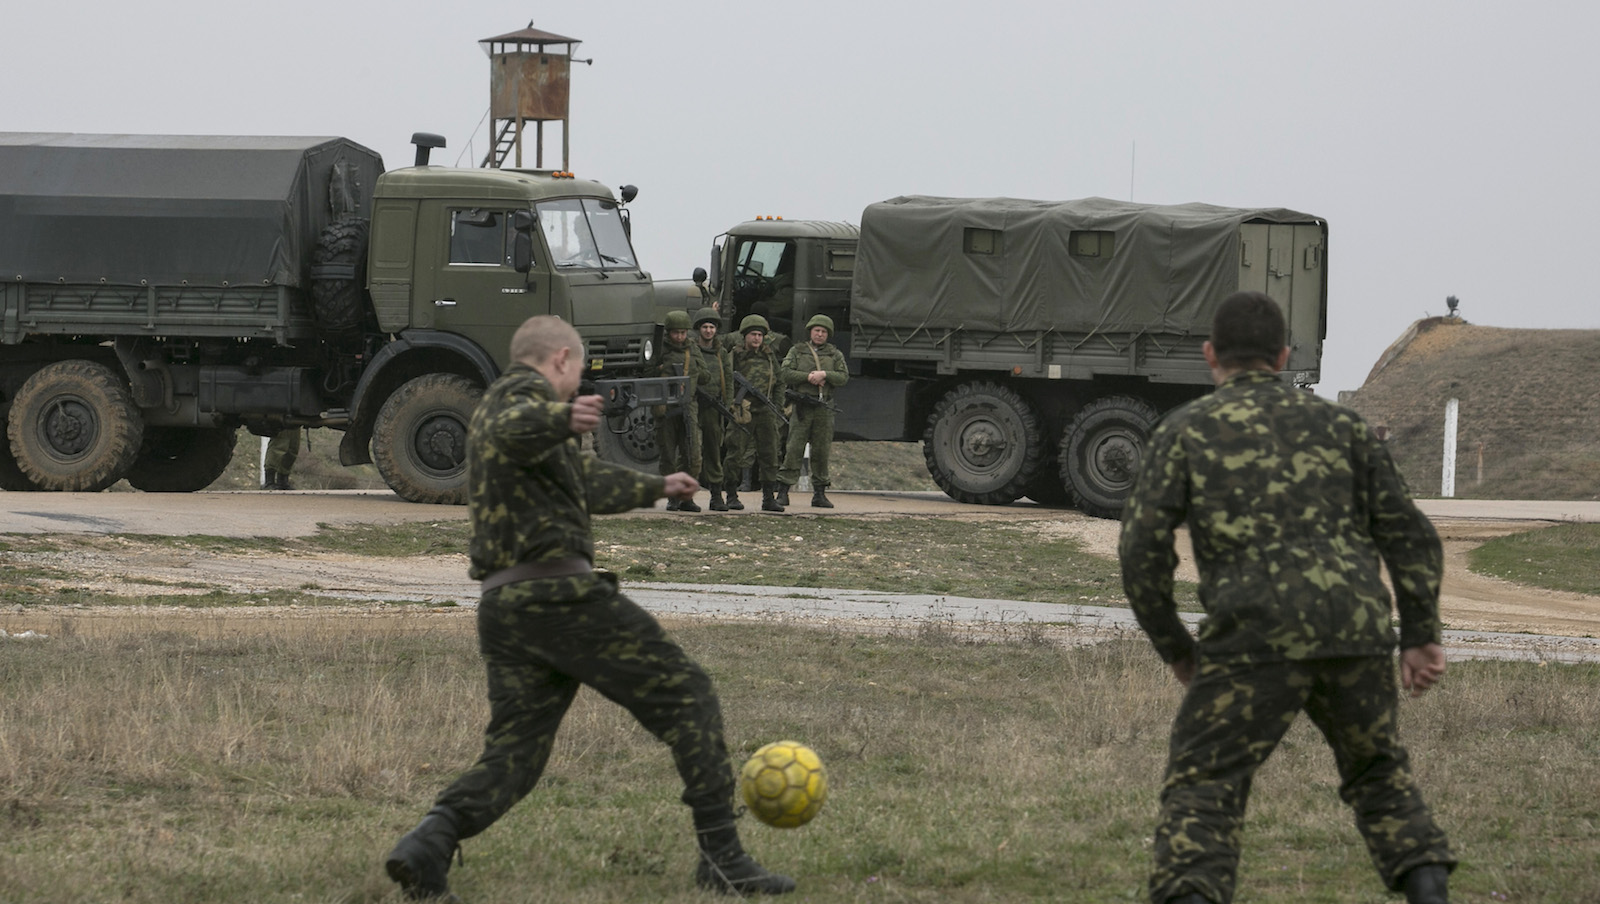 Russian soldiers watch Ukrainian servicemen play soccer at Belbek airport in the Crimea region March 4, 2014. A column of unarmed Ukrainian servicemen arrived at the base for negotiations with Russian troops on Tuesday, local media reported.  REUTERS/Baz Ratner (UKRAINE - Tags: MILITARY POLITICS SPORT SOCCER TPX IMAGES OF THE DAY) - RTR3G10A